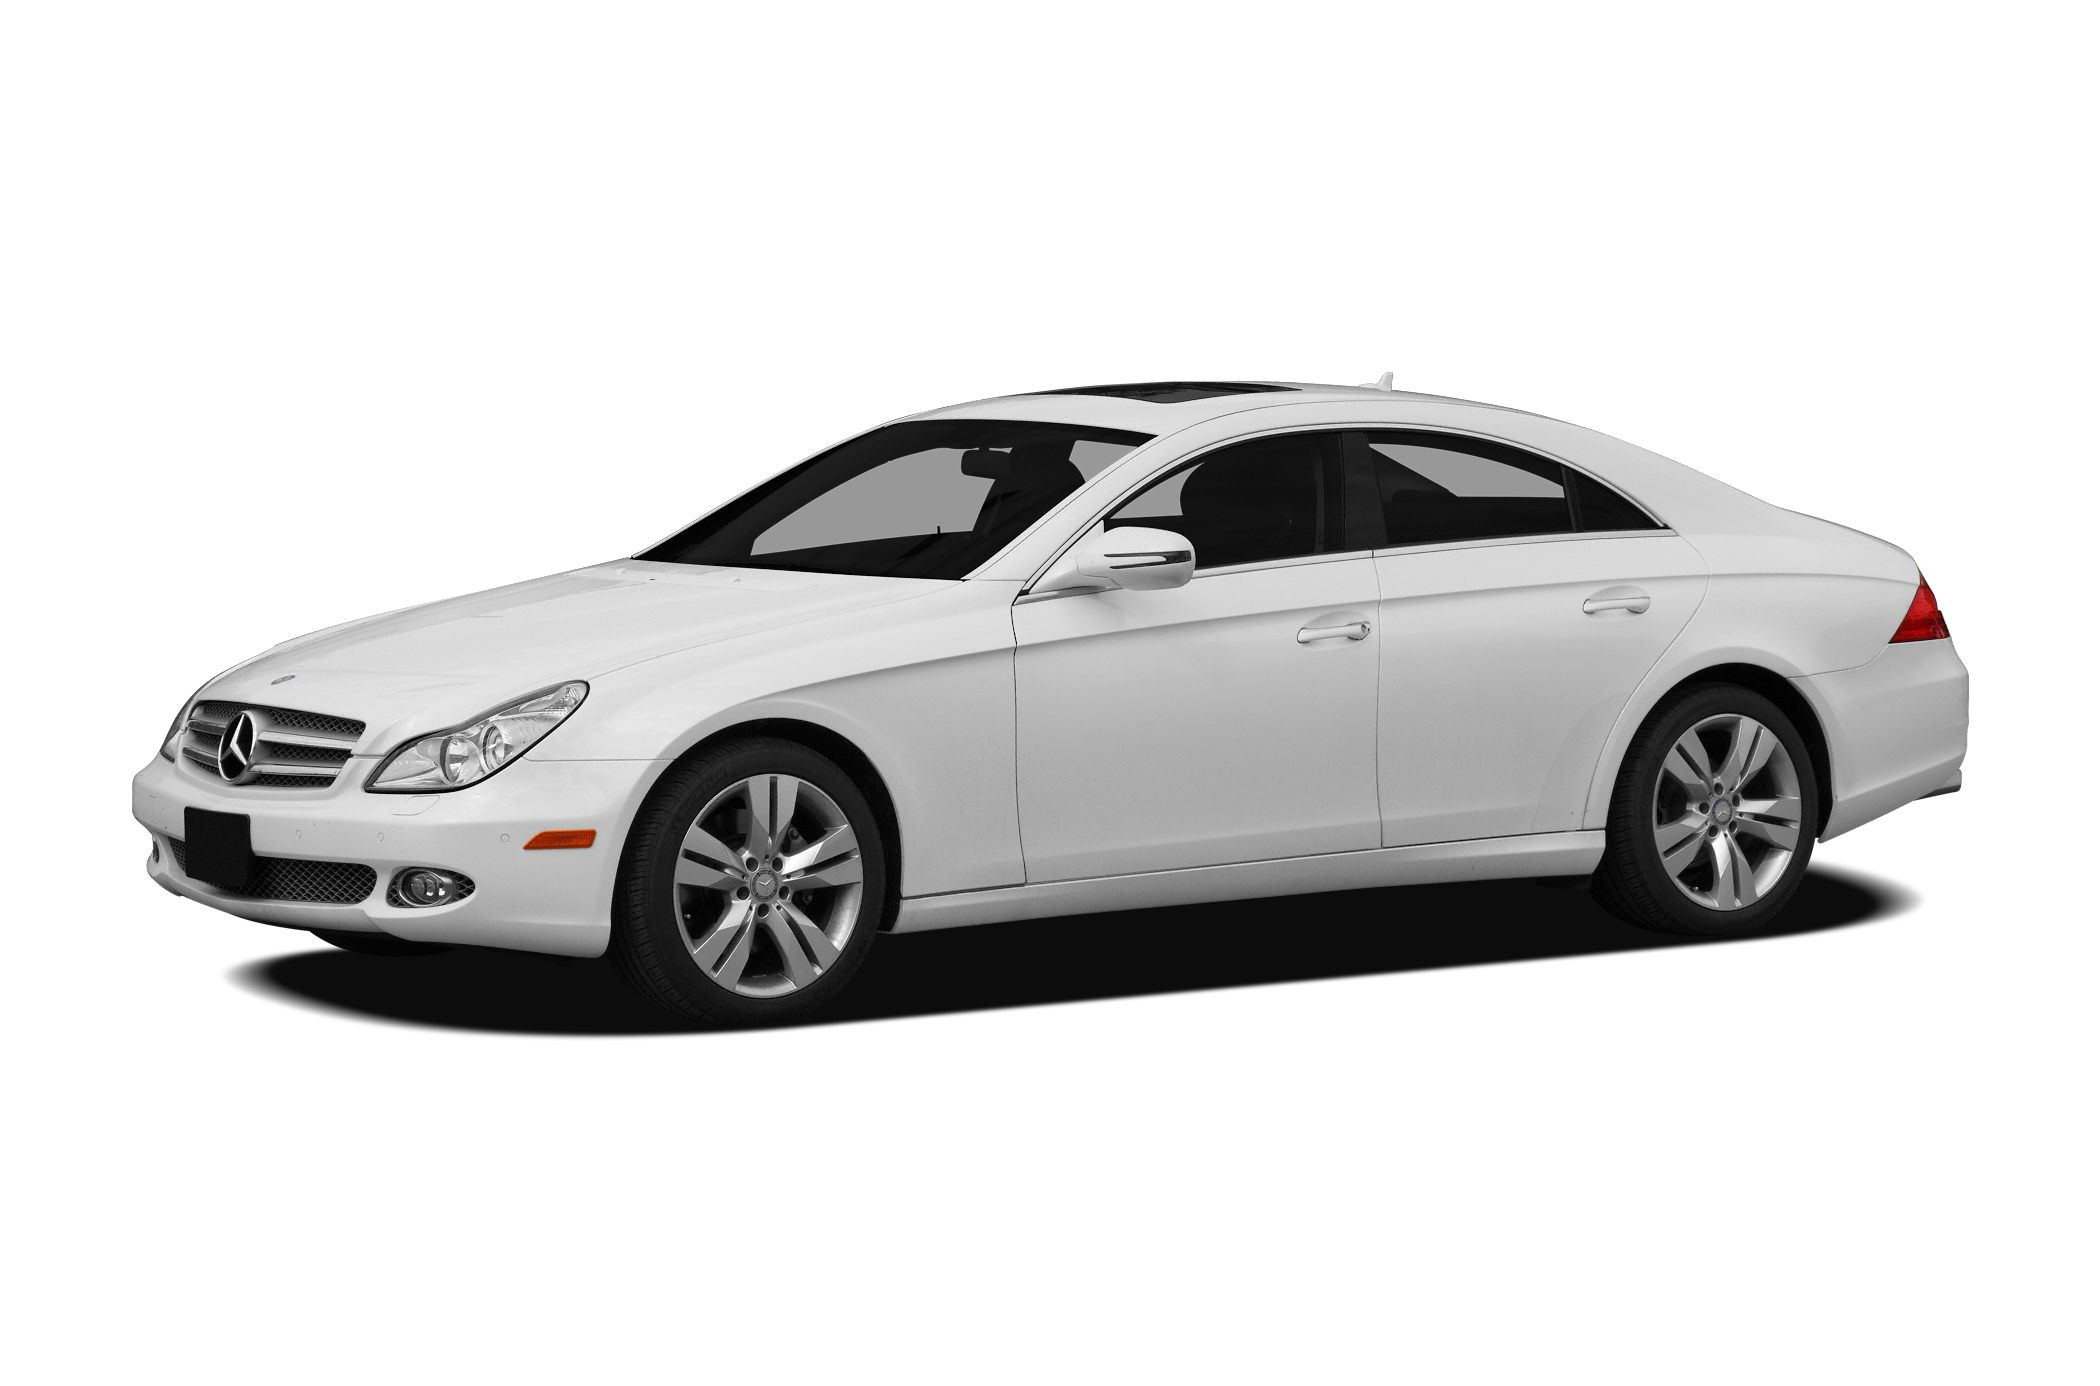 2009 MERCEDES CLS-Class CLS550 DISCLAIMER We are excited to offer this vehicle to you but it is c